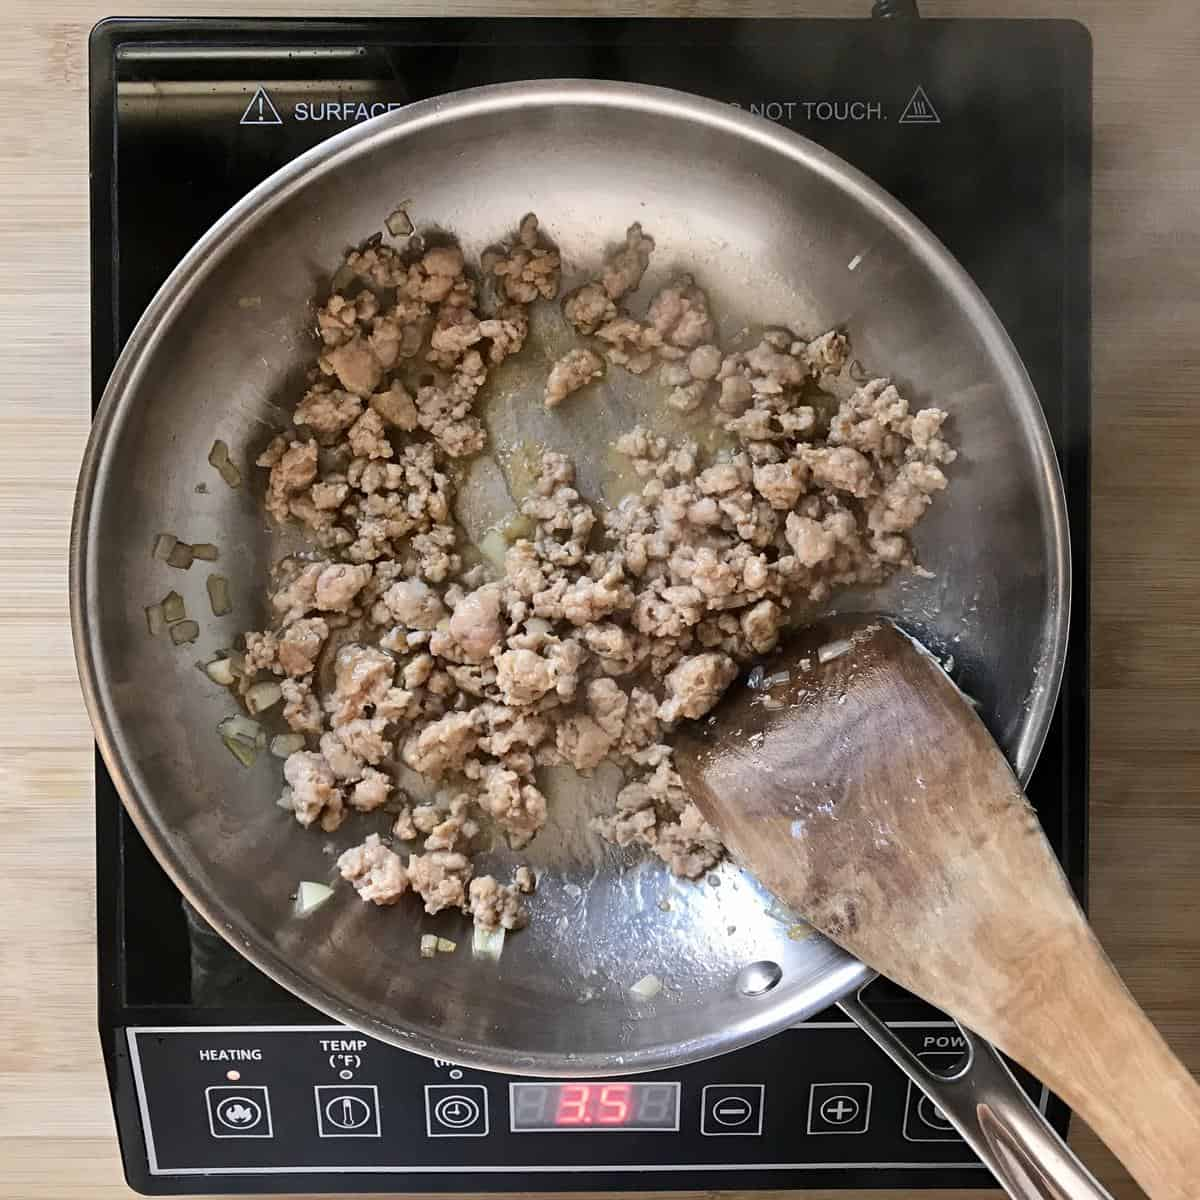 Italian sausage being sauteed in a pan.